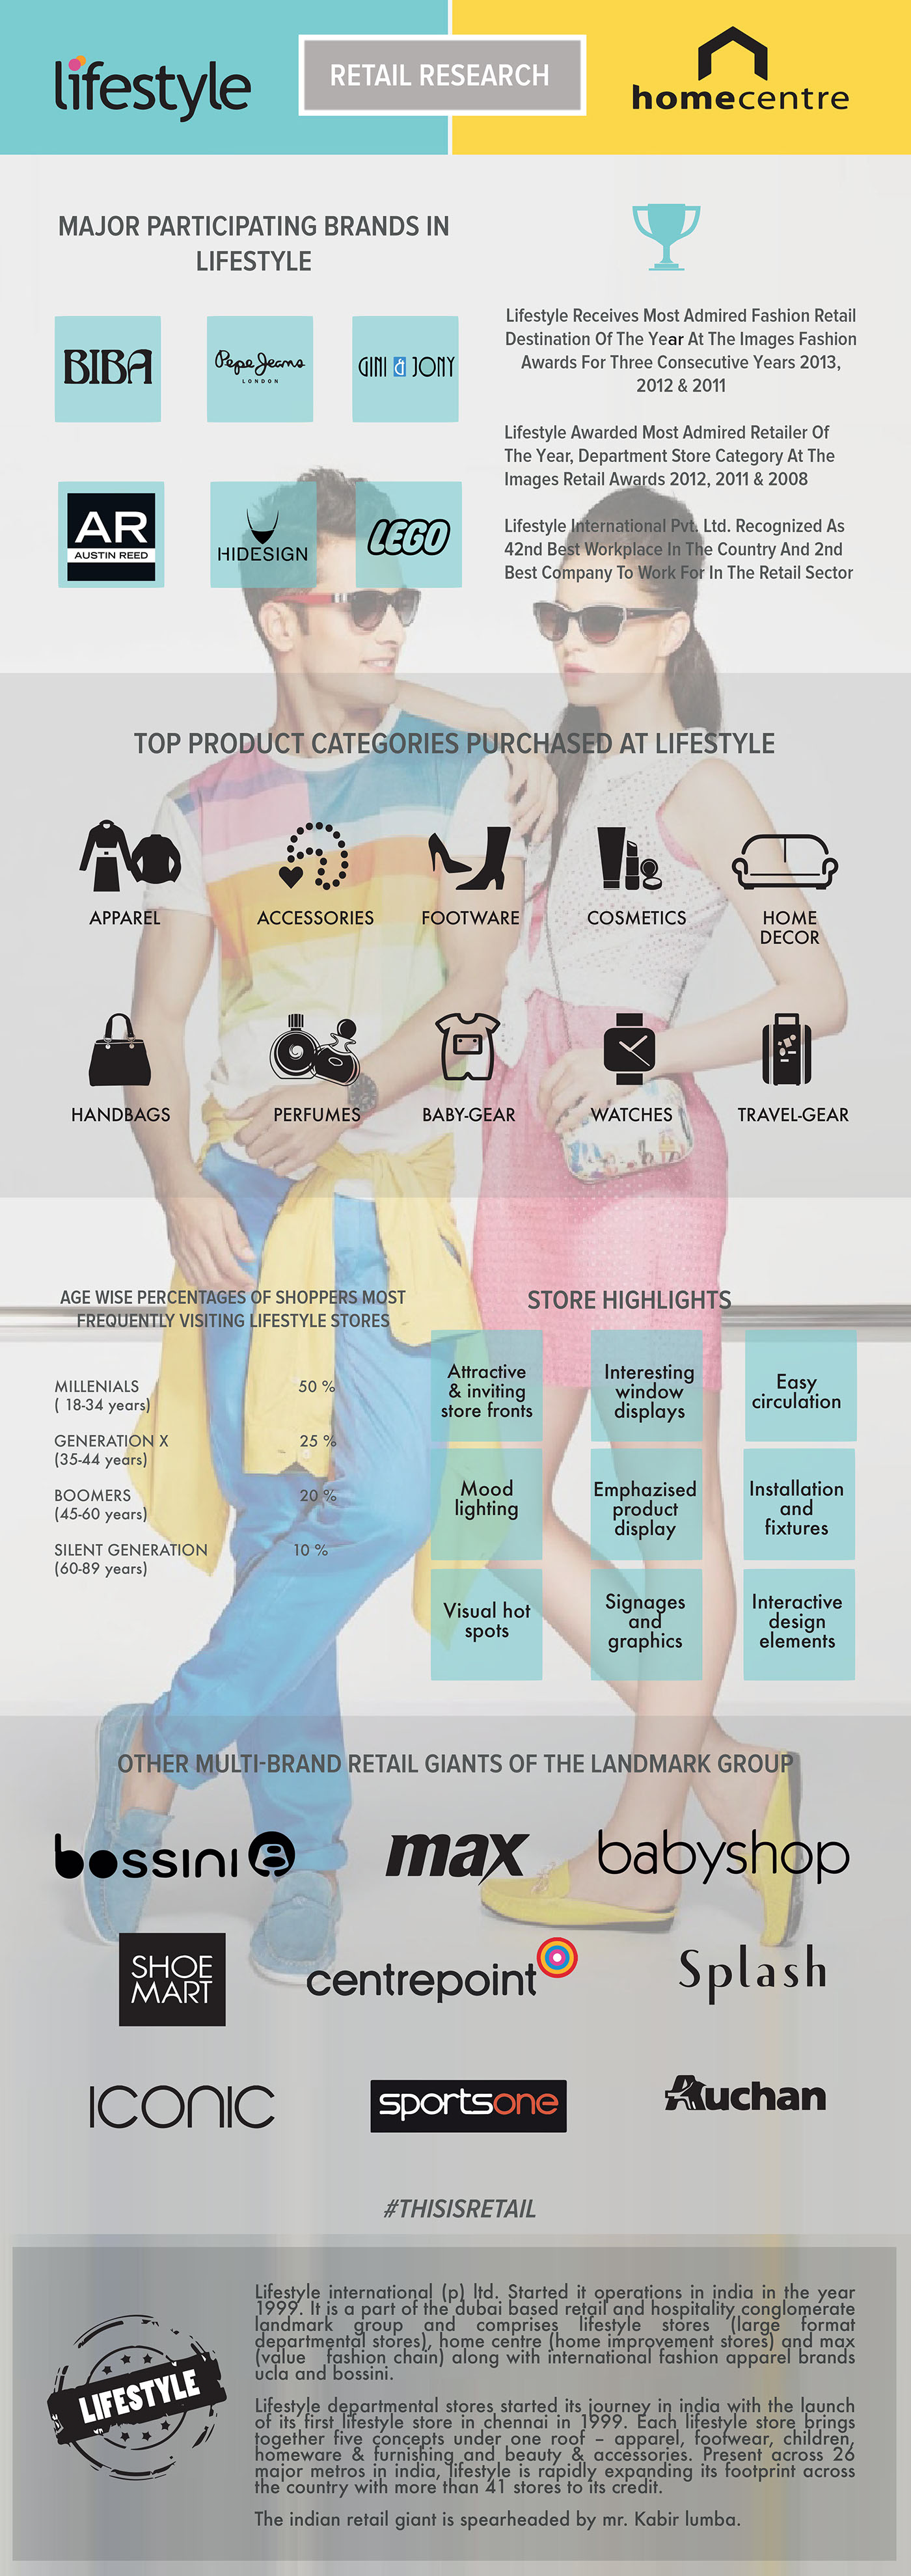 literature view impact on organised retail and unorganised retail sector In the retail sector  home retail the impact of gst on the retail sector in india retail hub the impact of gst on the retail sector in india by indiaretailing.